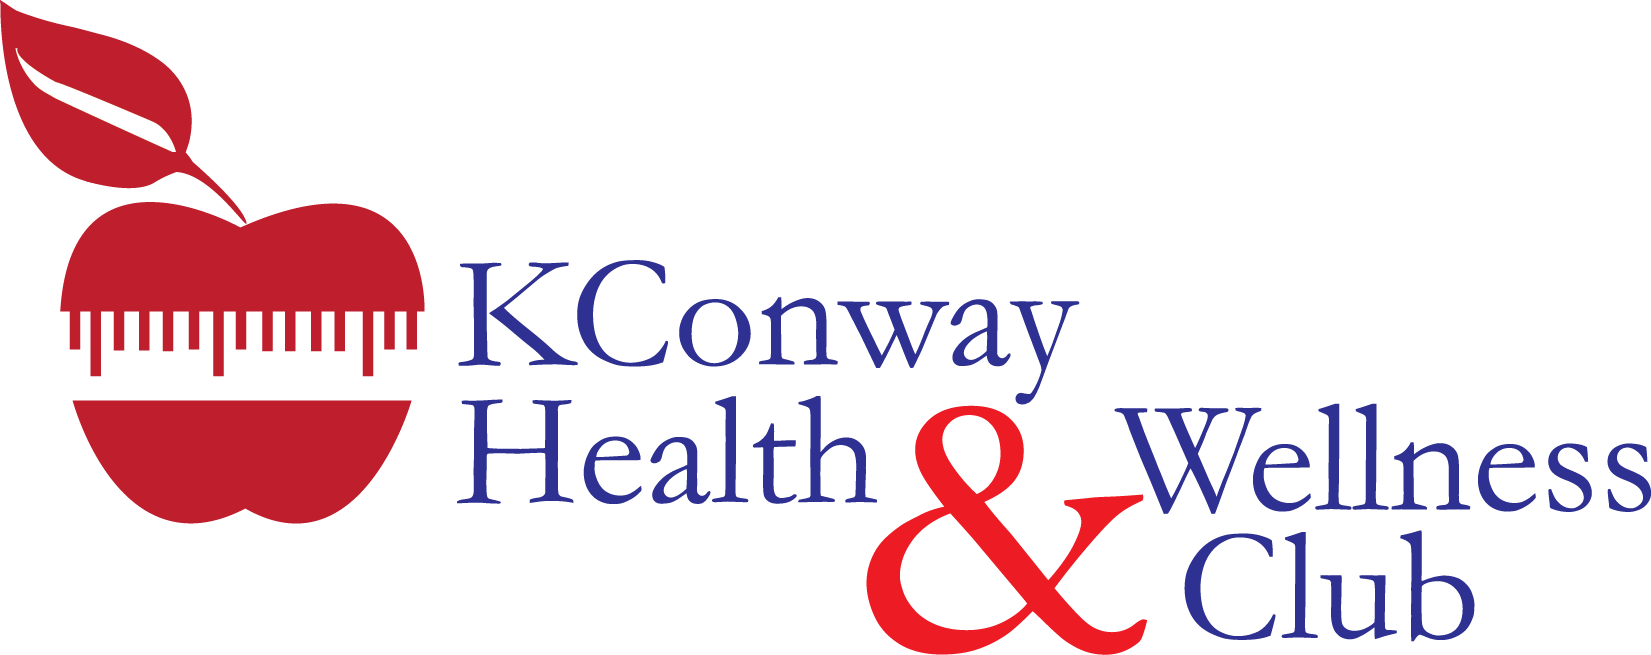 Win a Free 2-month Membership at KConway Health & Wellness Club